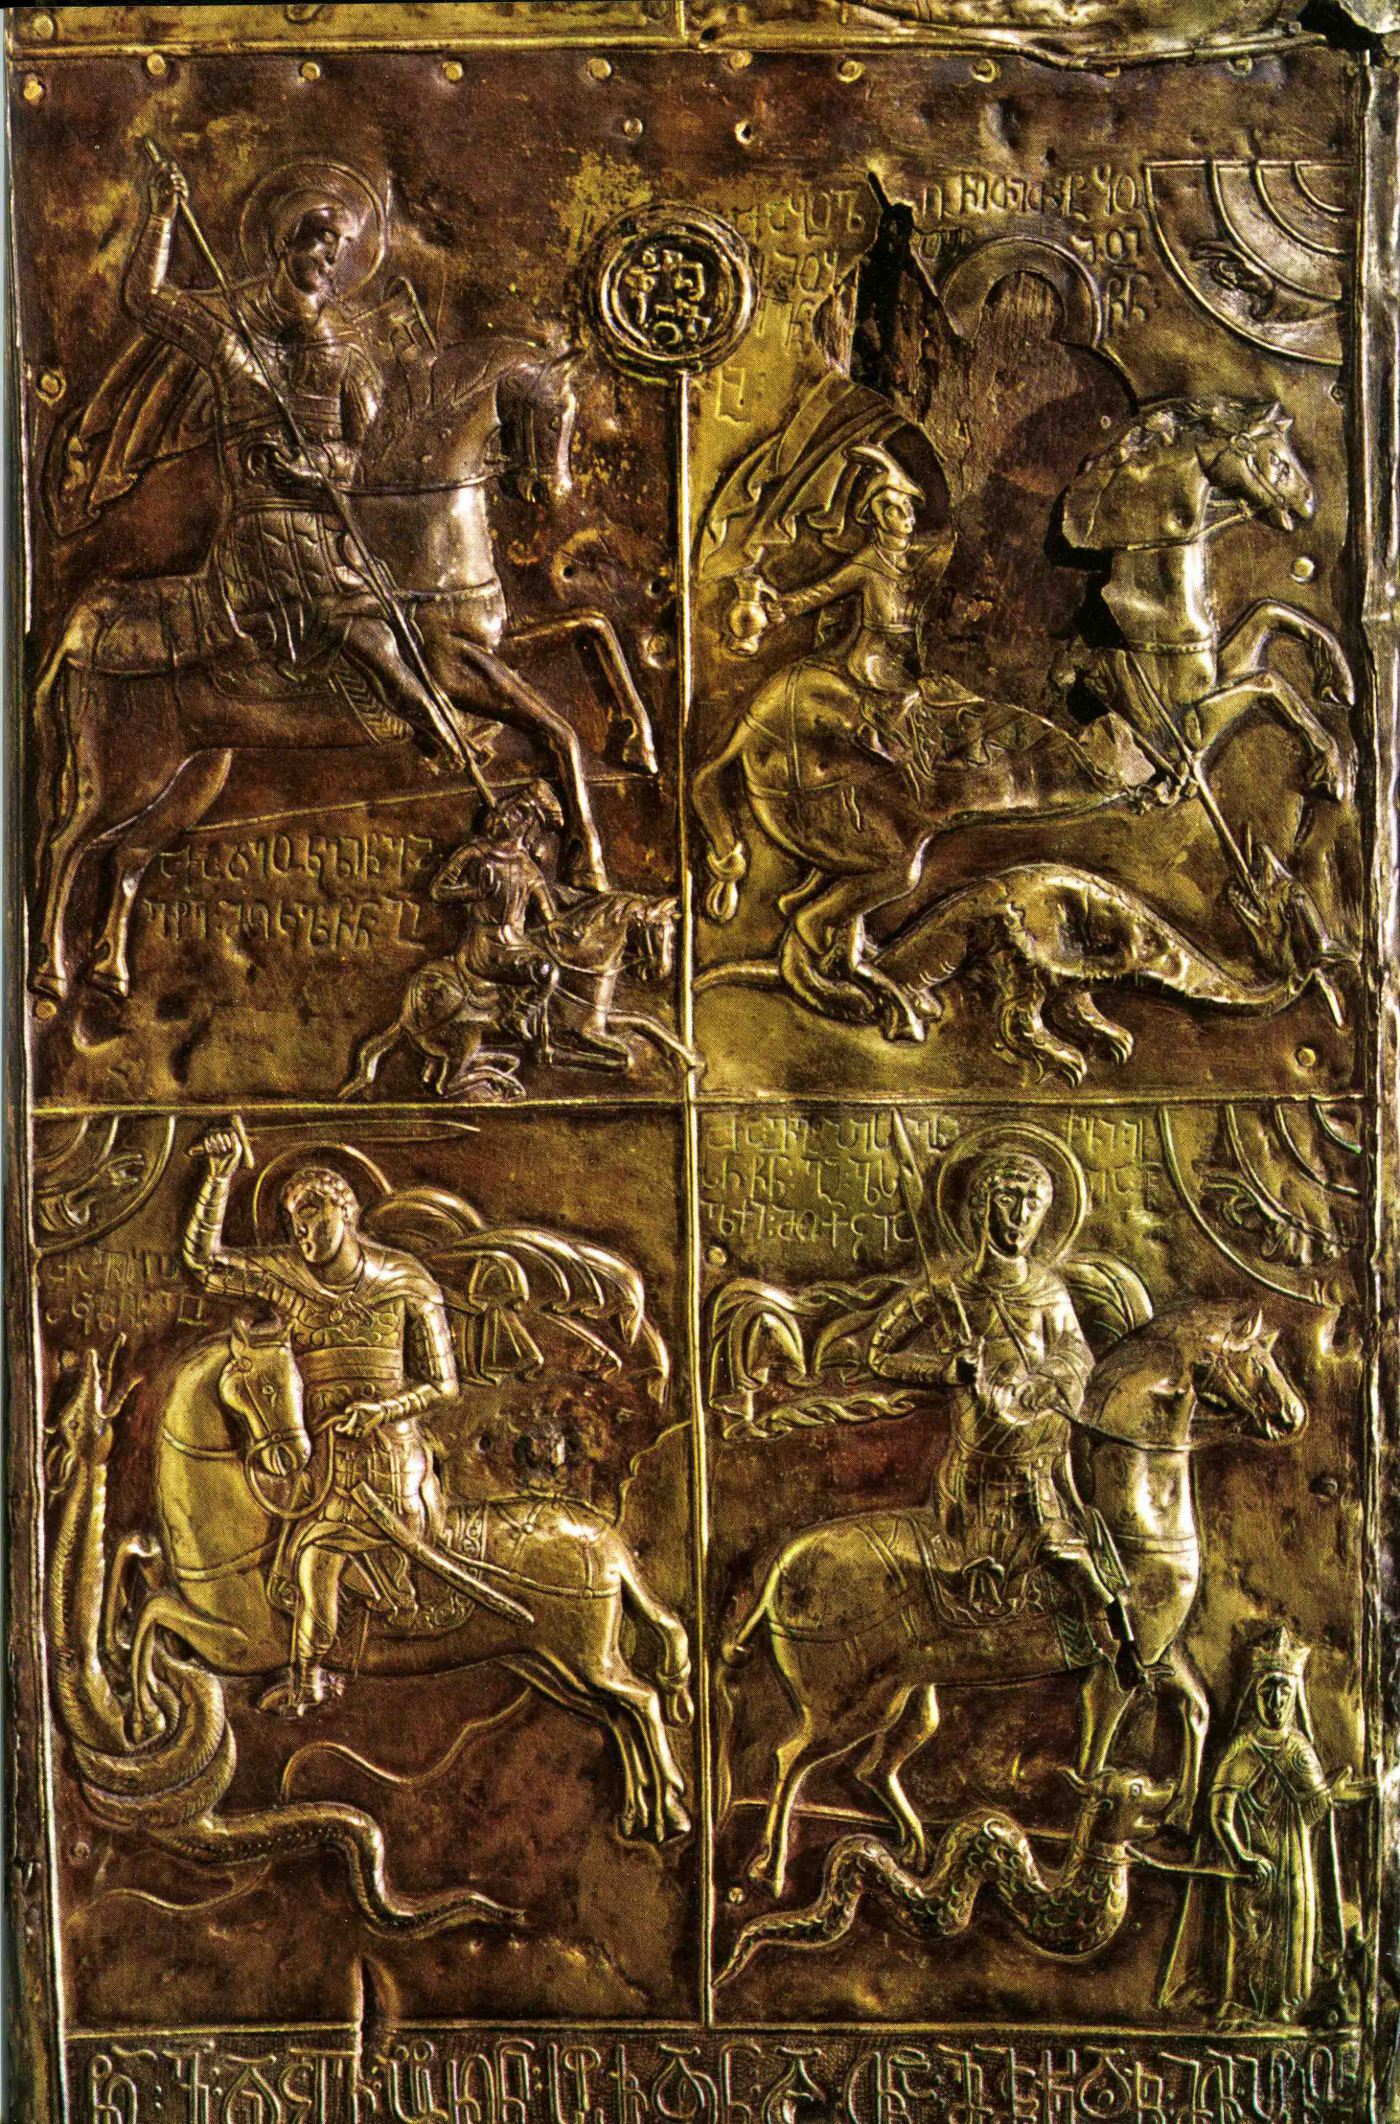 Four scenes from the life of St George from the Chkhari Cross, 15th century